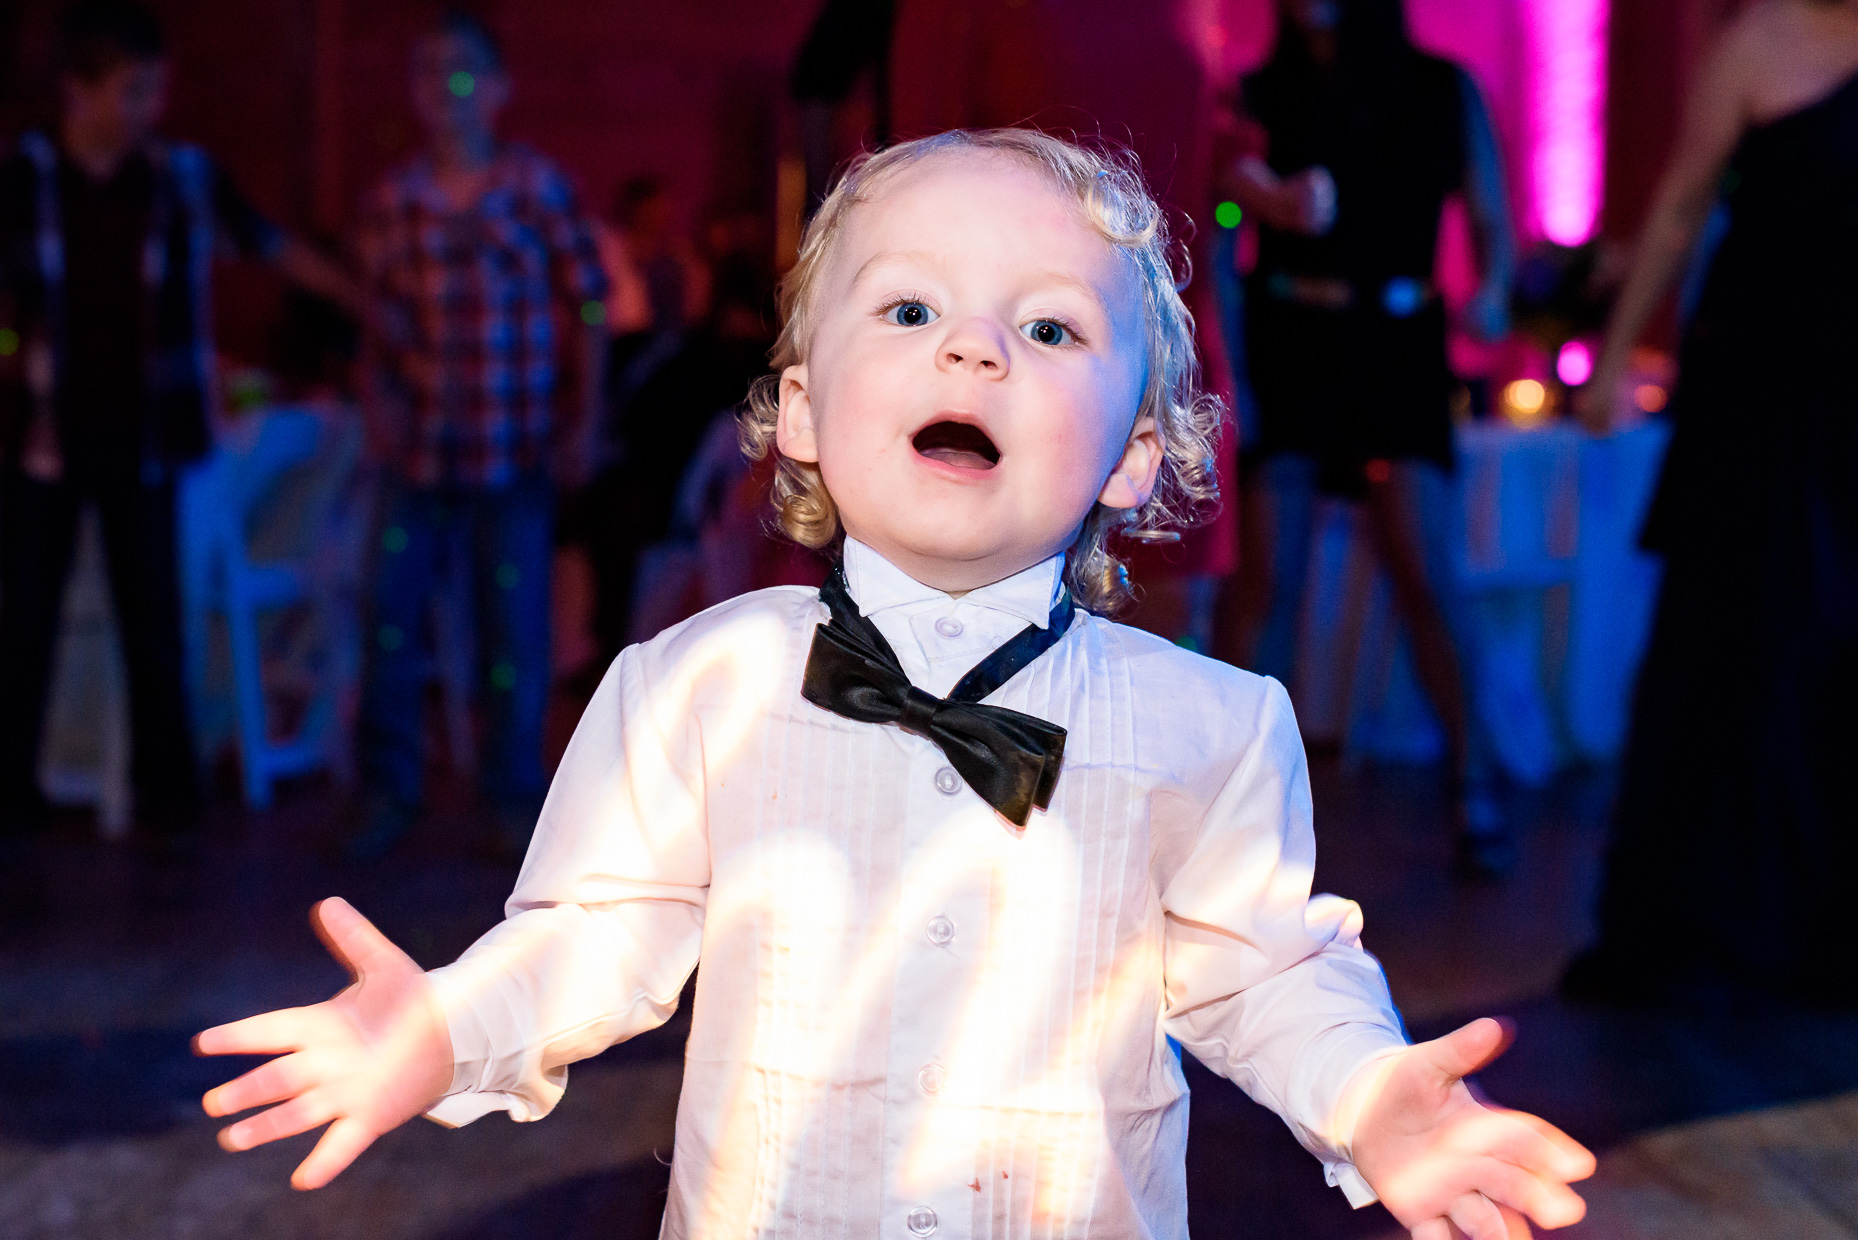 Austin-Wedding-Photographer-kid-reception-tux-funny-colorful